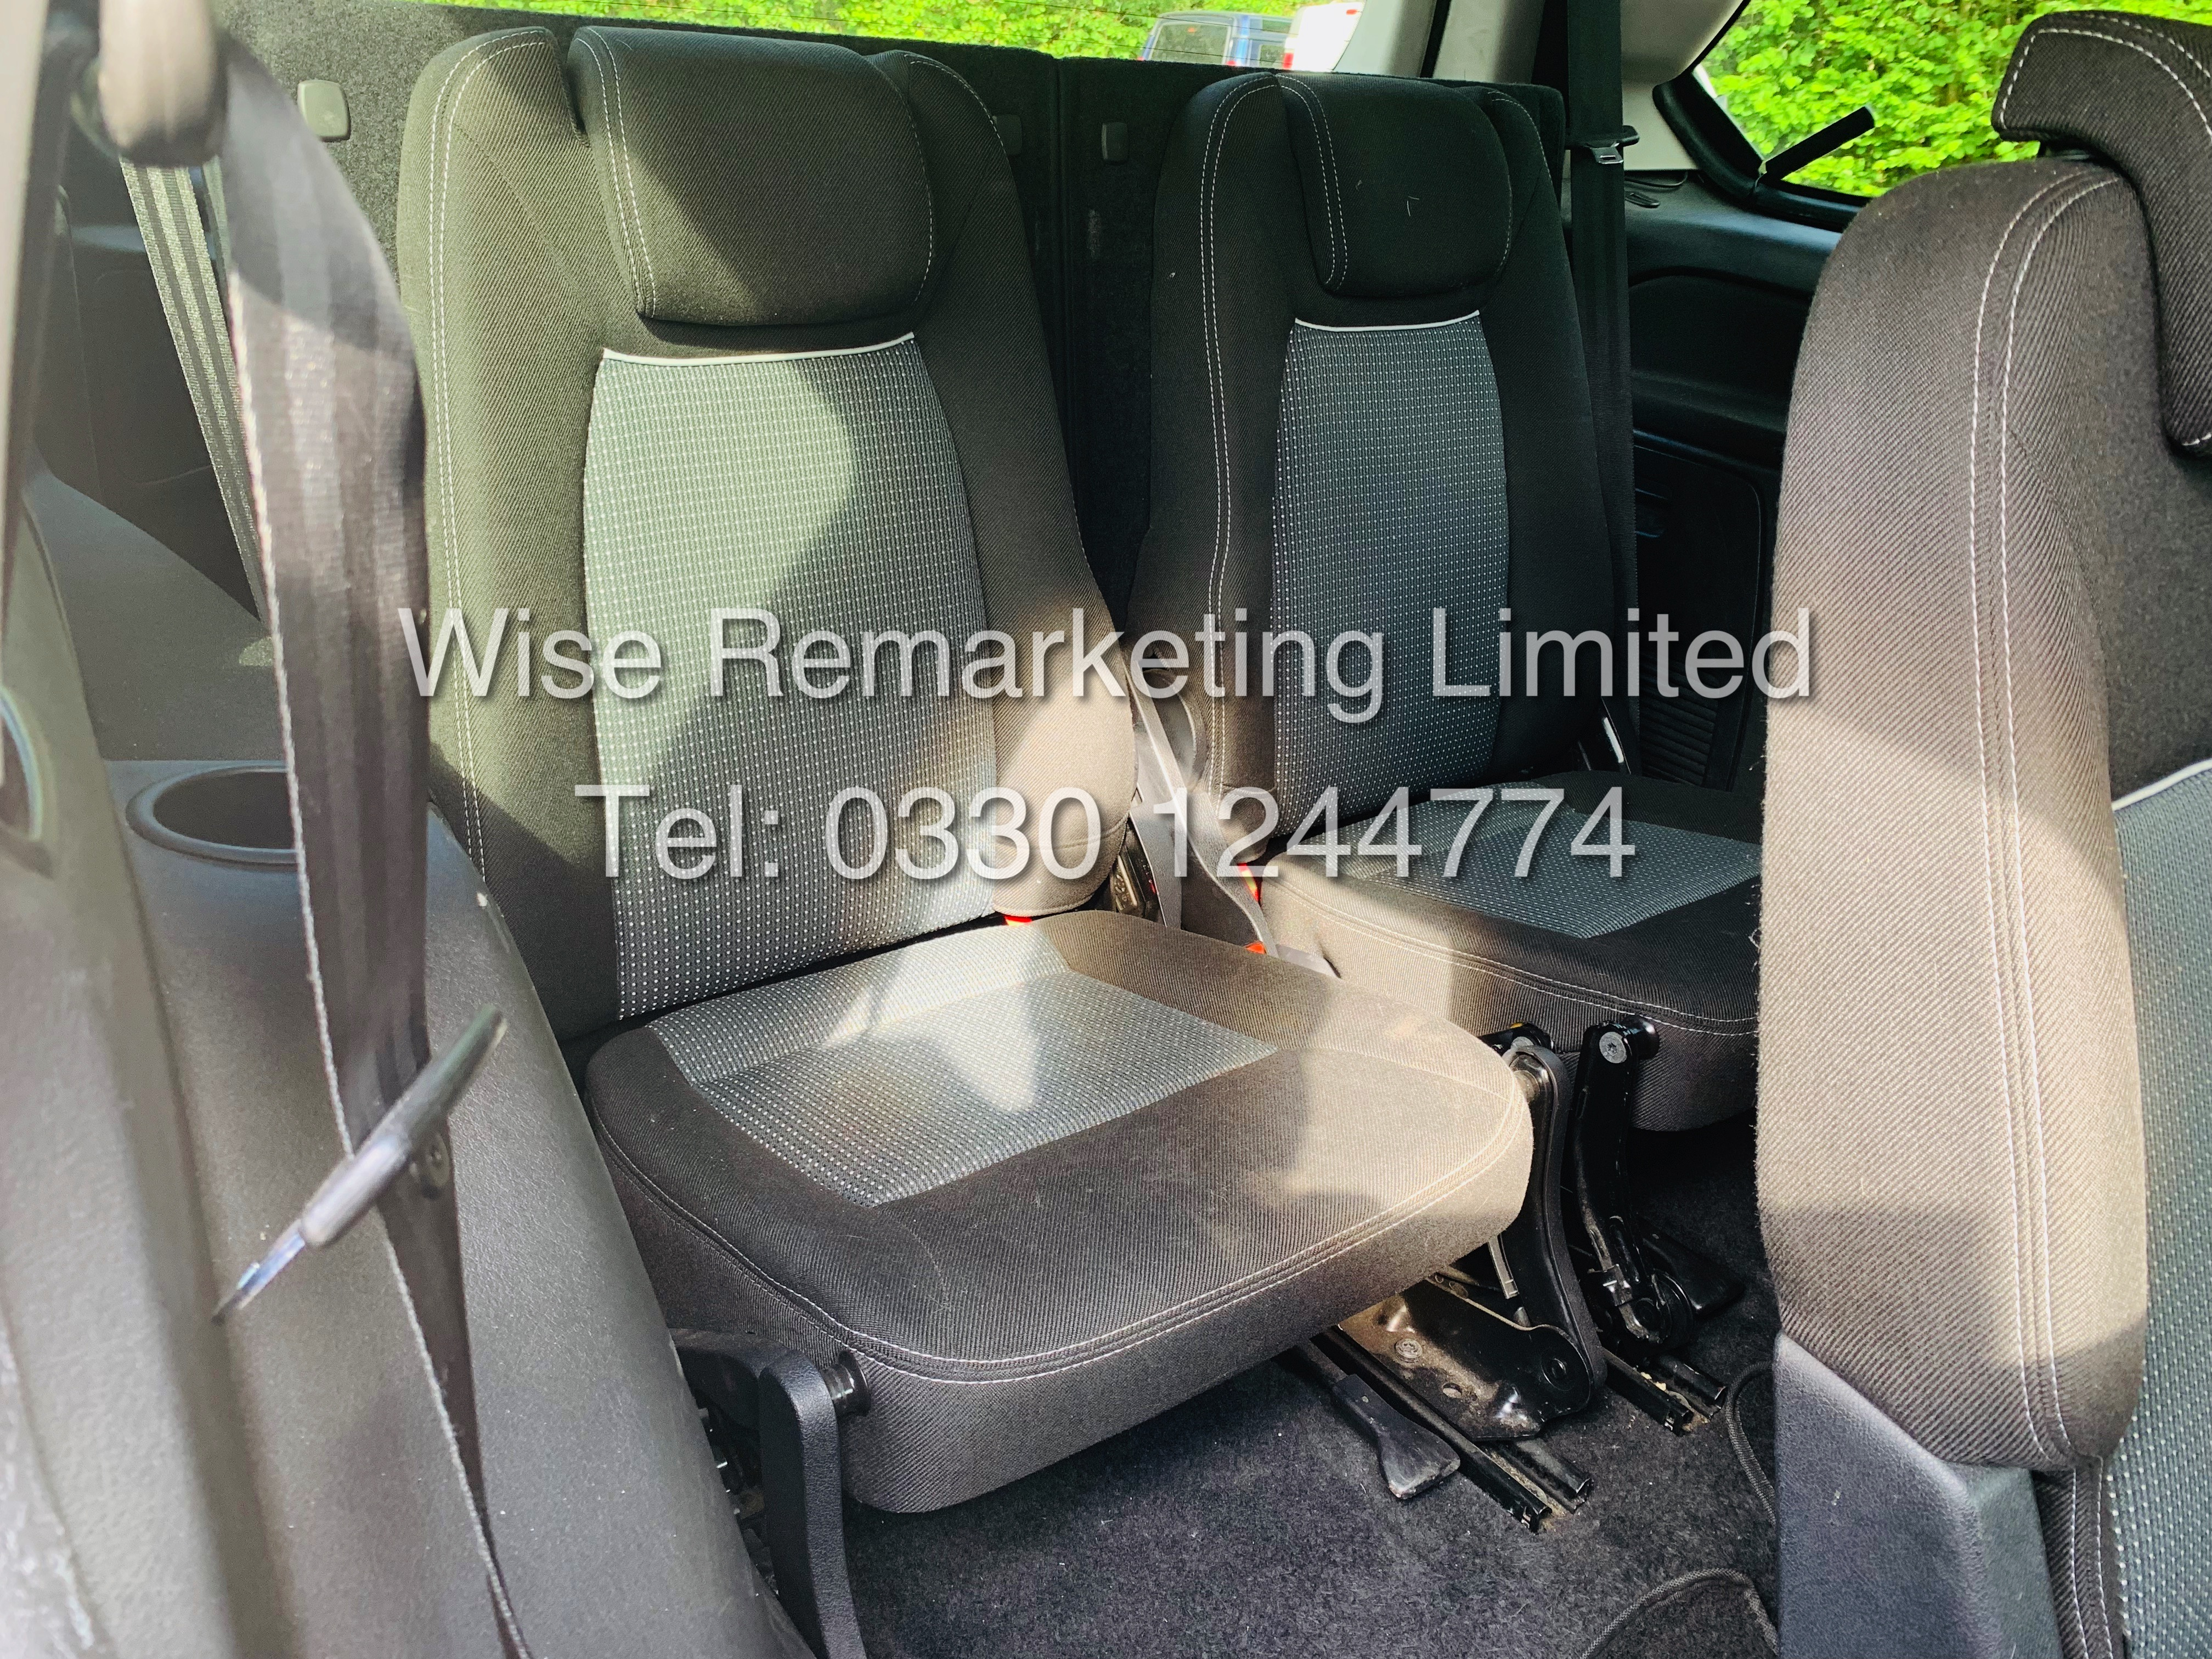 FORD GALAXY ZETEC 2.0L TDCI AUTO 7 SEATER MPV 63 REG *1 OWNER* - Image 12 of 18